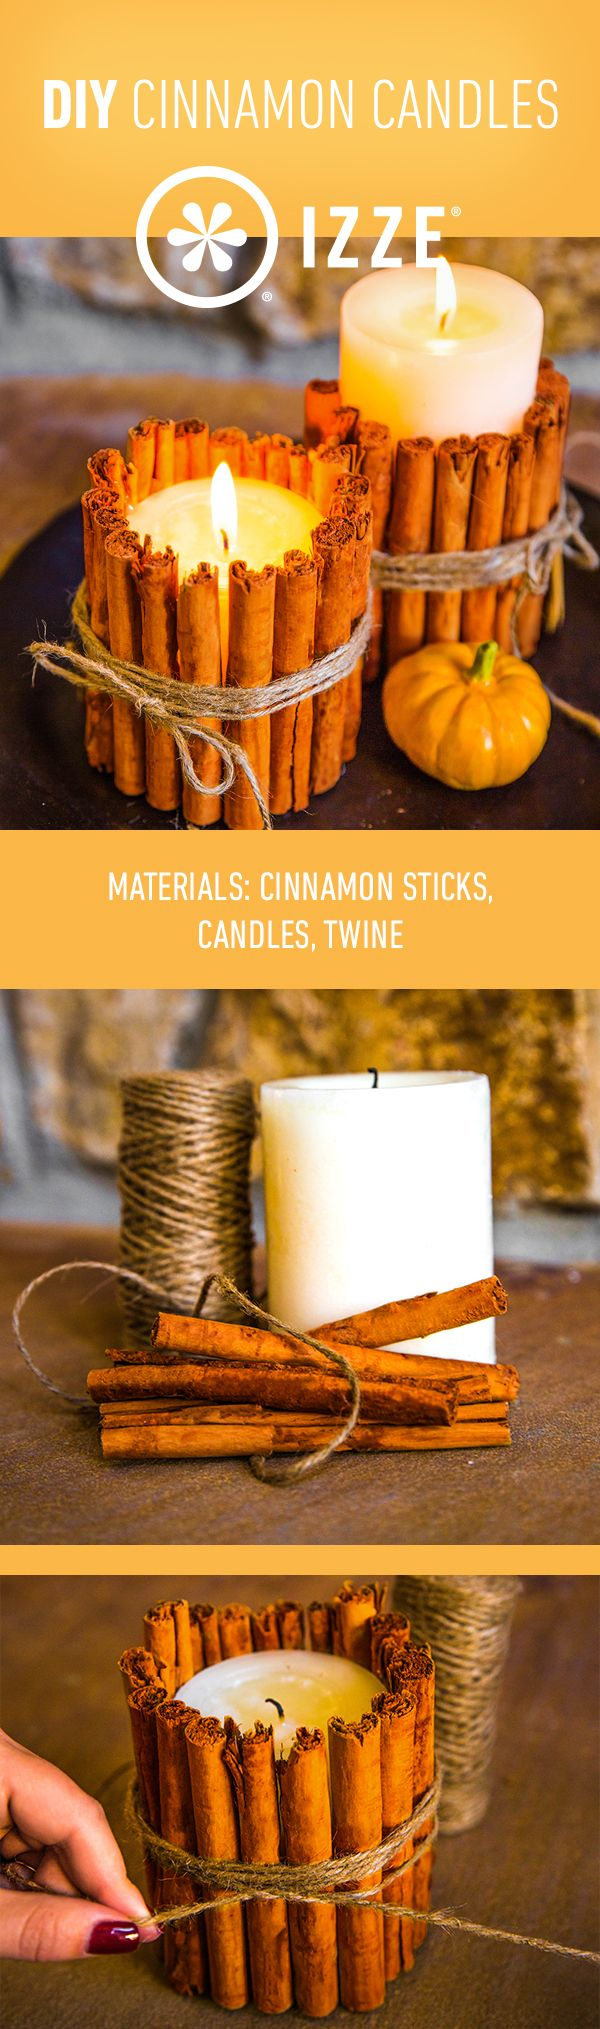 Make your home even brighter with our DIY cinammon candles for fall.